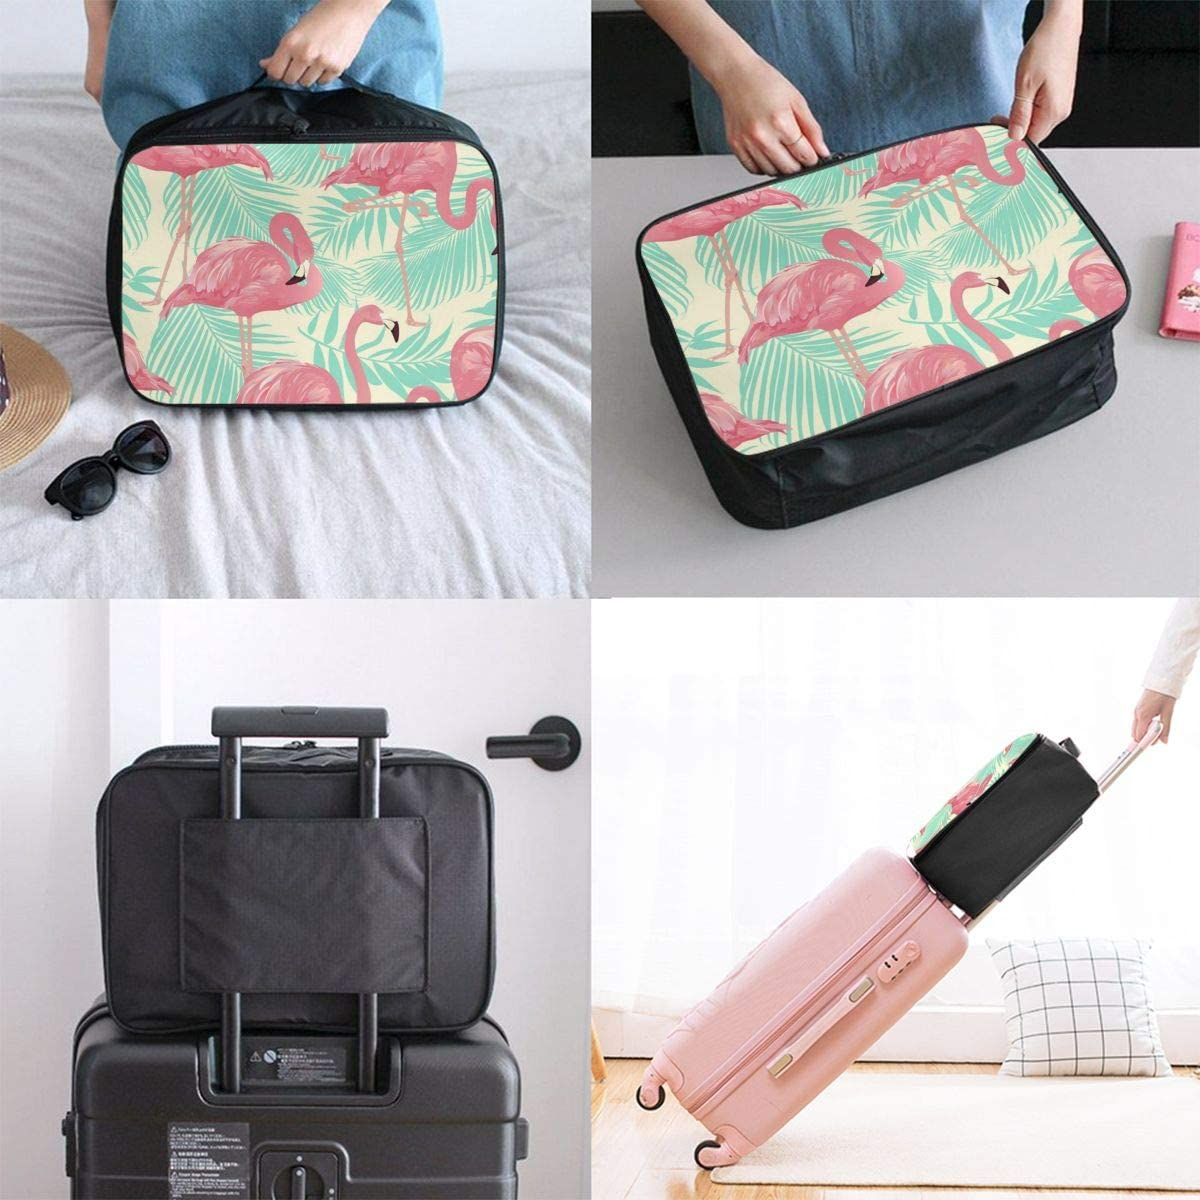 Yunshm Tropical Bird Flamingo Vector Image Customized Trolley Handbag Waterproof Unisex Large Capacity For Business Travel Storage